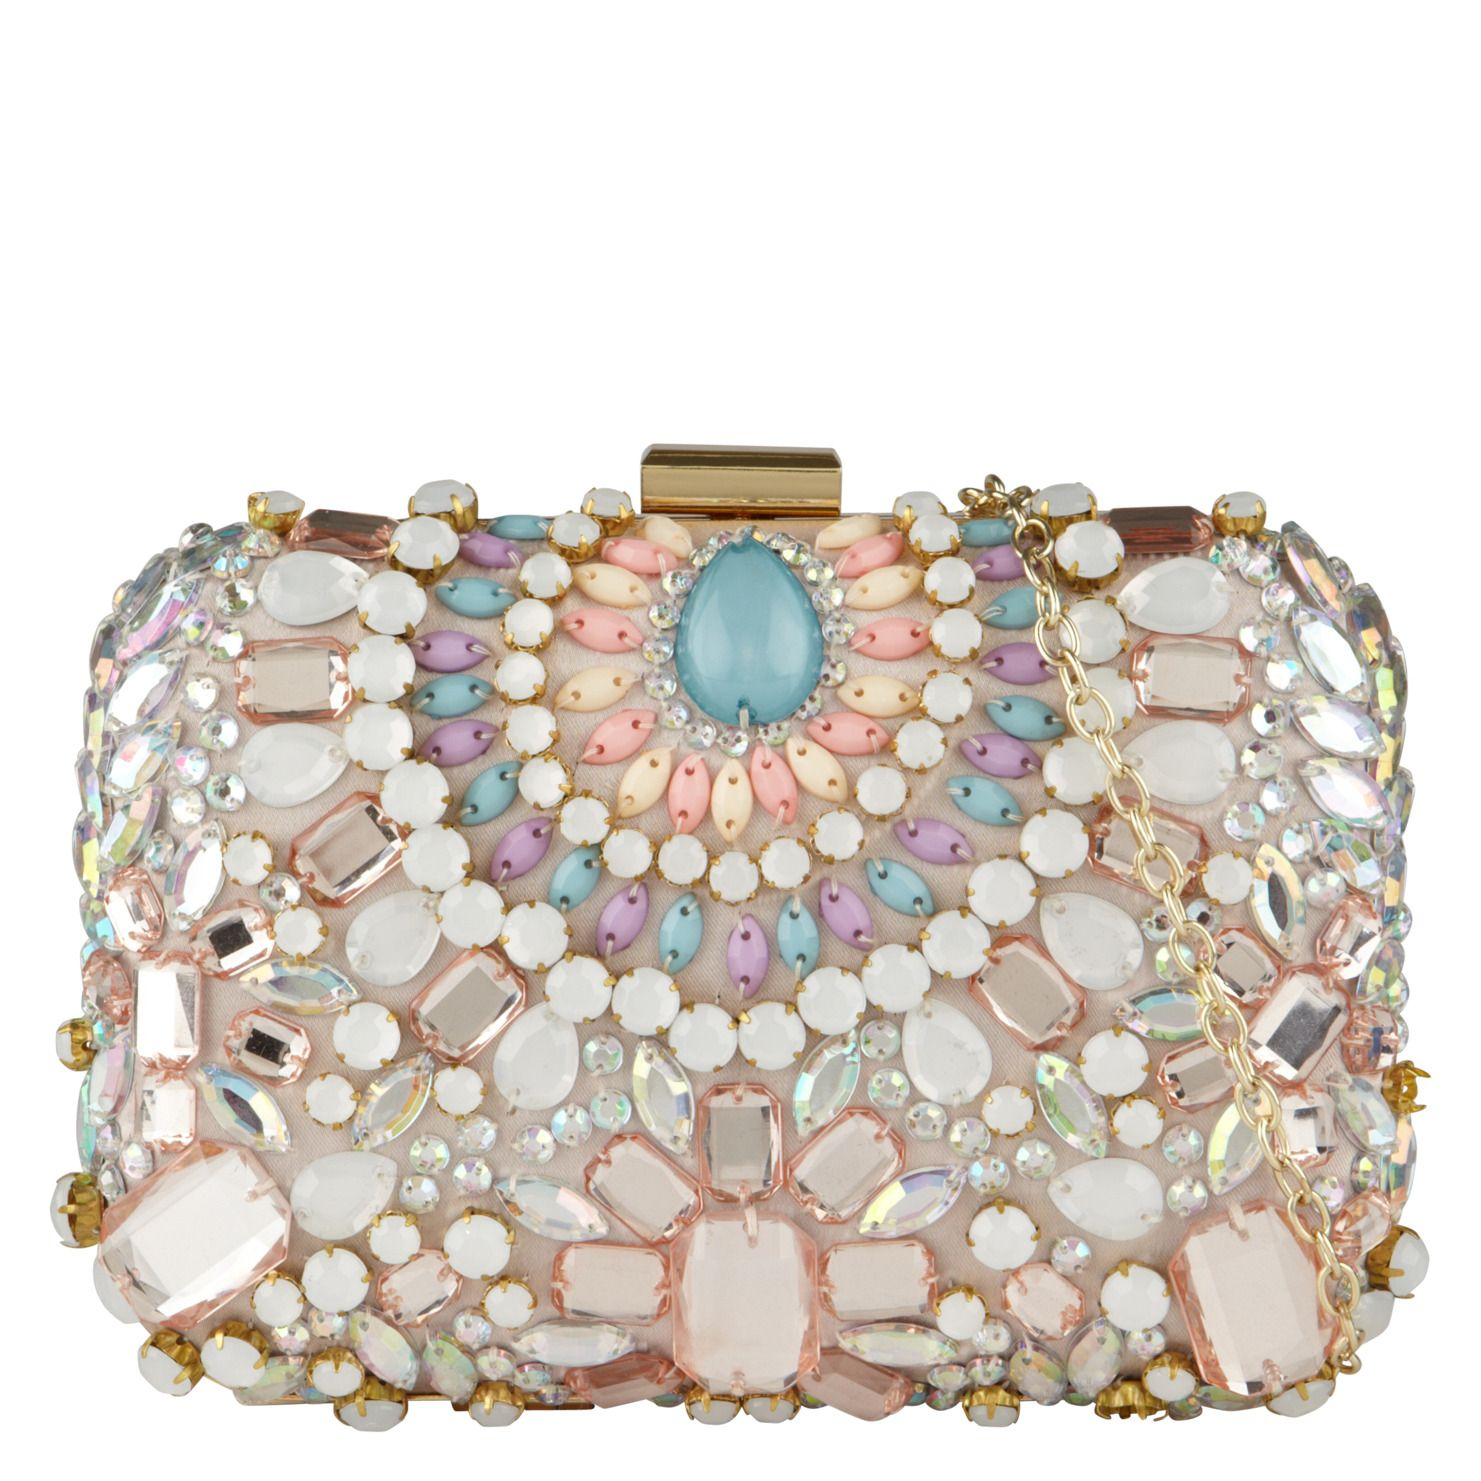 Statement Clutch - Lily Cluch by VIDA VIDA cflUAmuxu